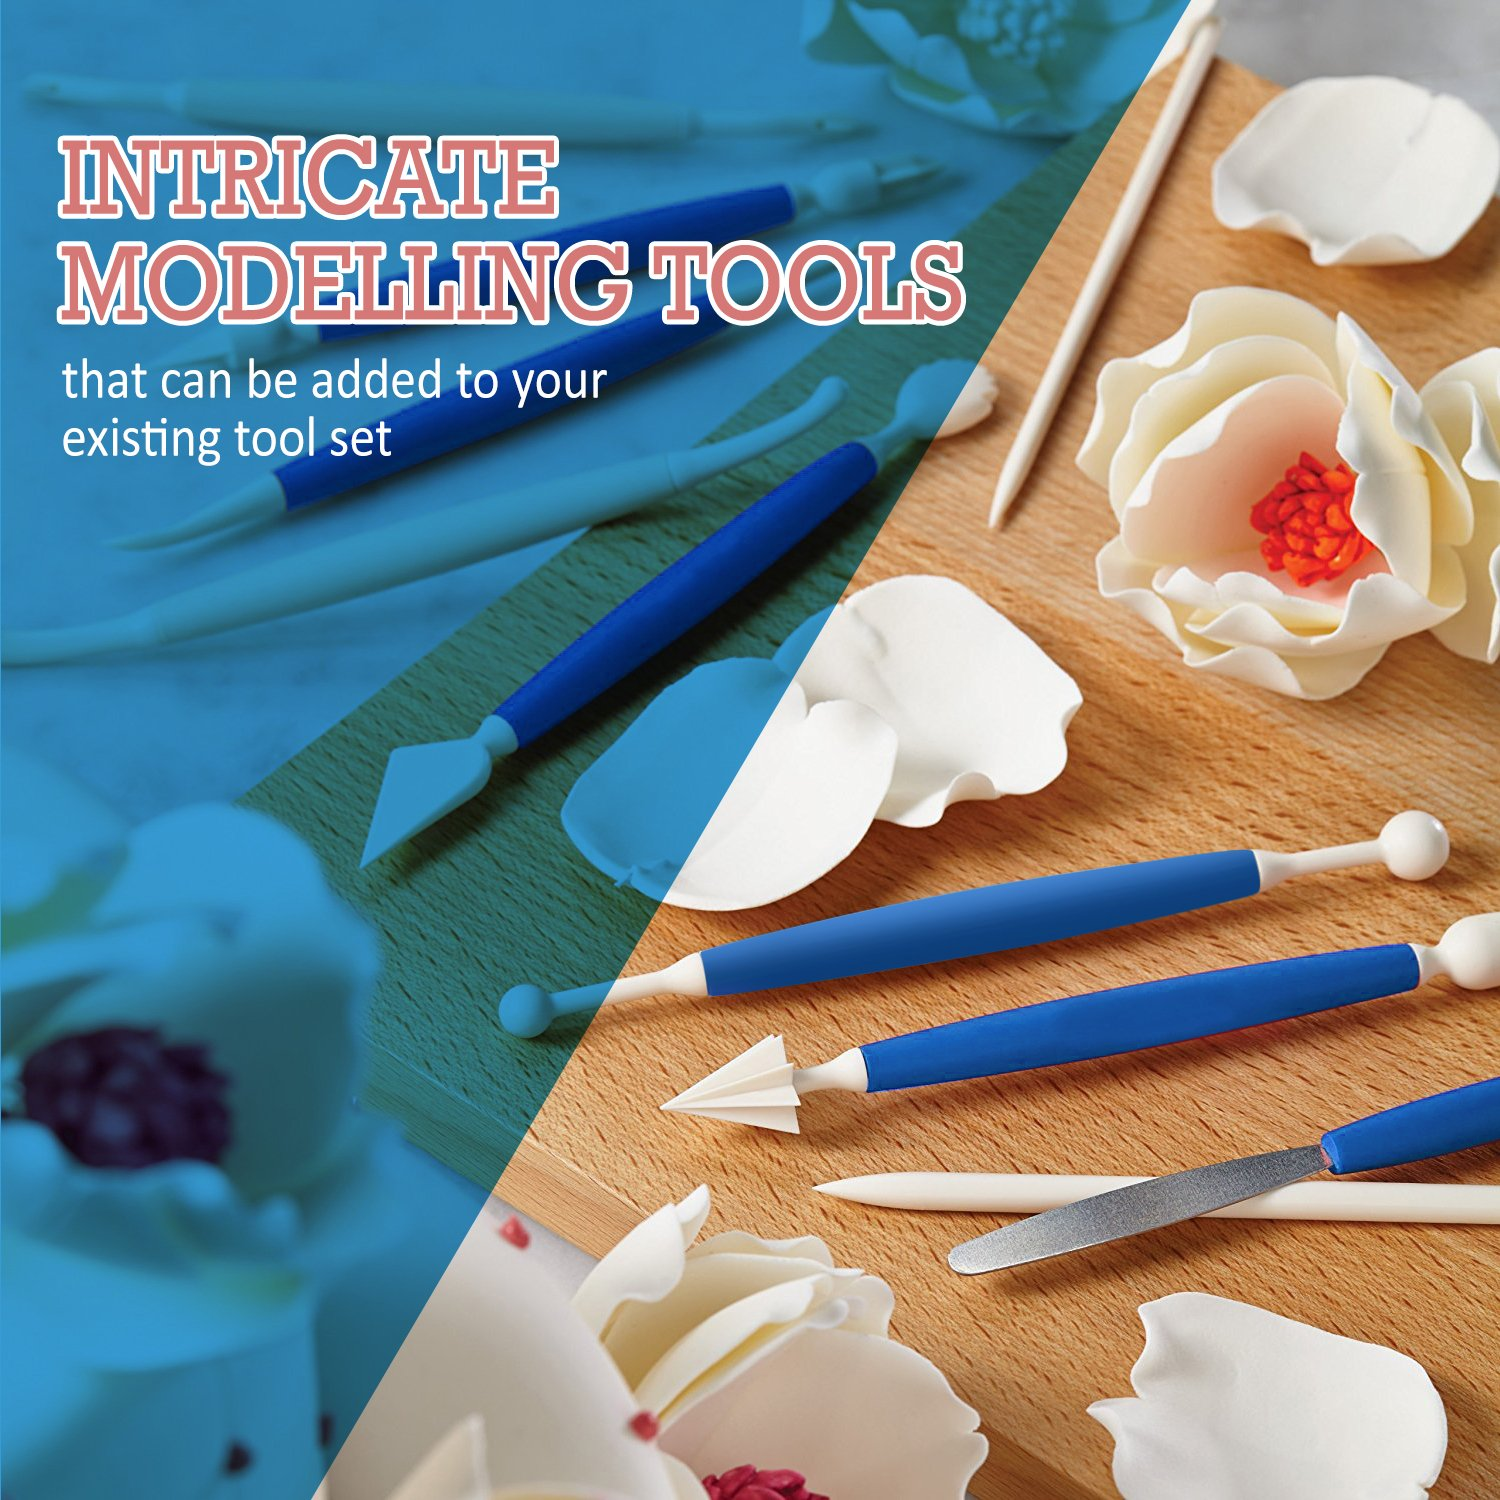 Frostinc Perfectly Assorted Cake Decorating Supplies 34 Pcs Kit - 10 Russian & Cone Icing Tips with 2 Couplers, 2 Reusable & 6 Disposable Piping Bags, 8 Model Tools, Scrapers & BONUS Items by Frostinc (Image #6)